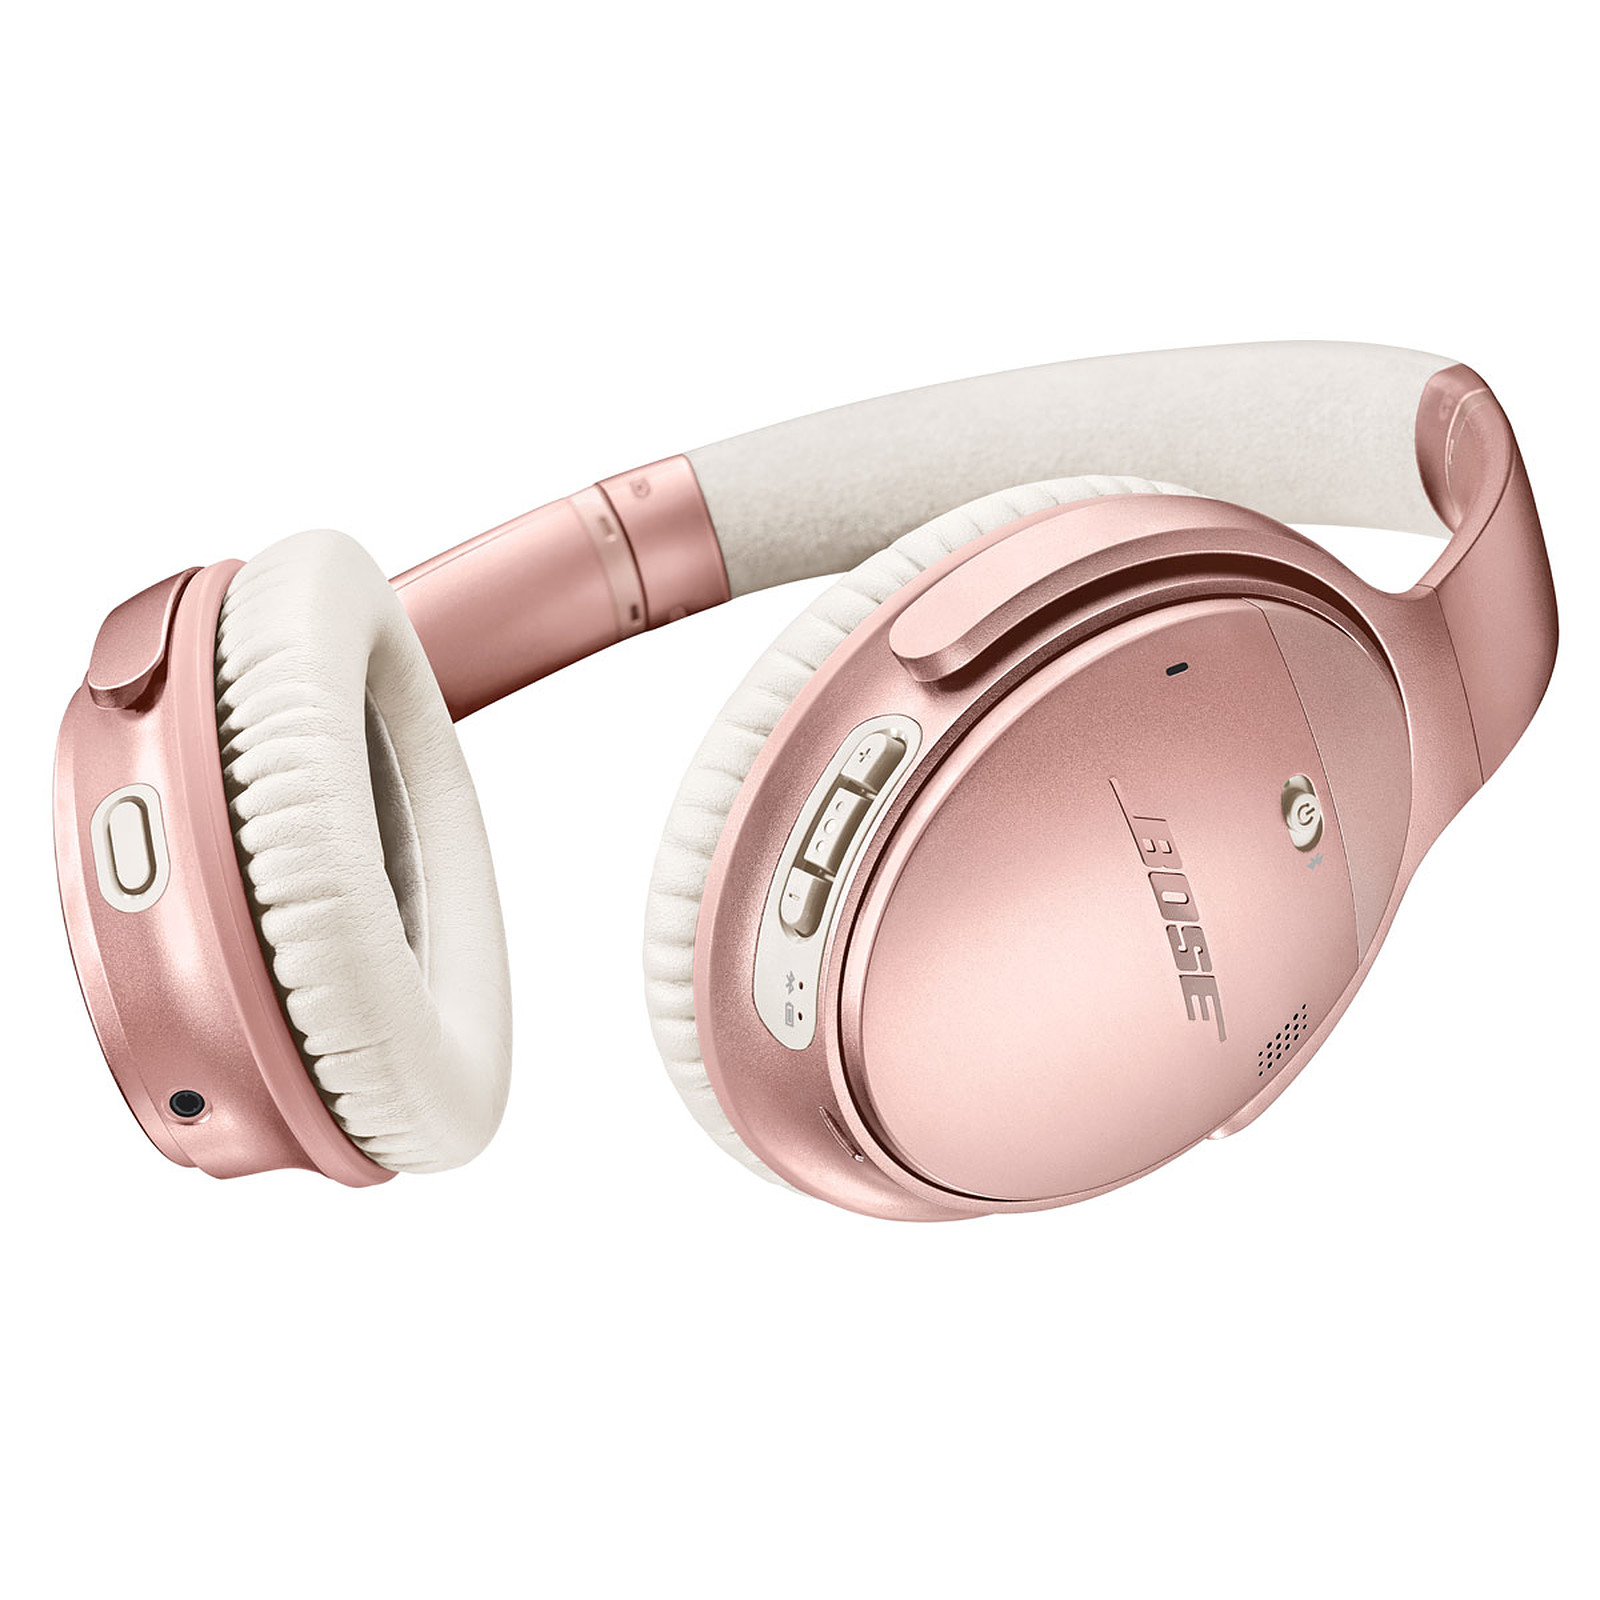 Bose Quietcomfort 35 Ii Wireless Rose Or Casque Bose Sur Ldlccom